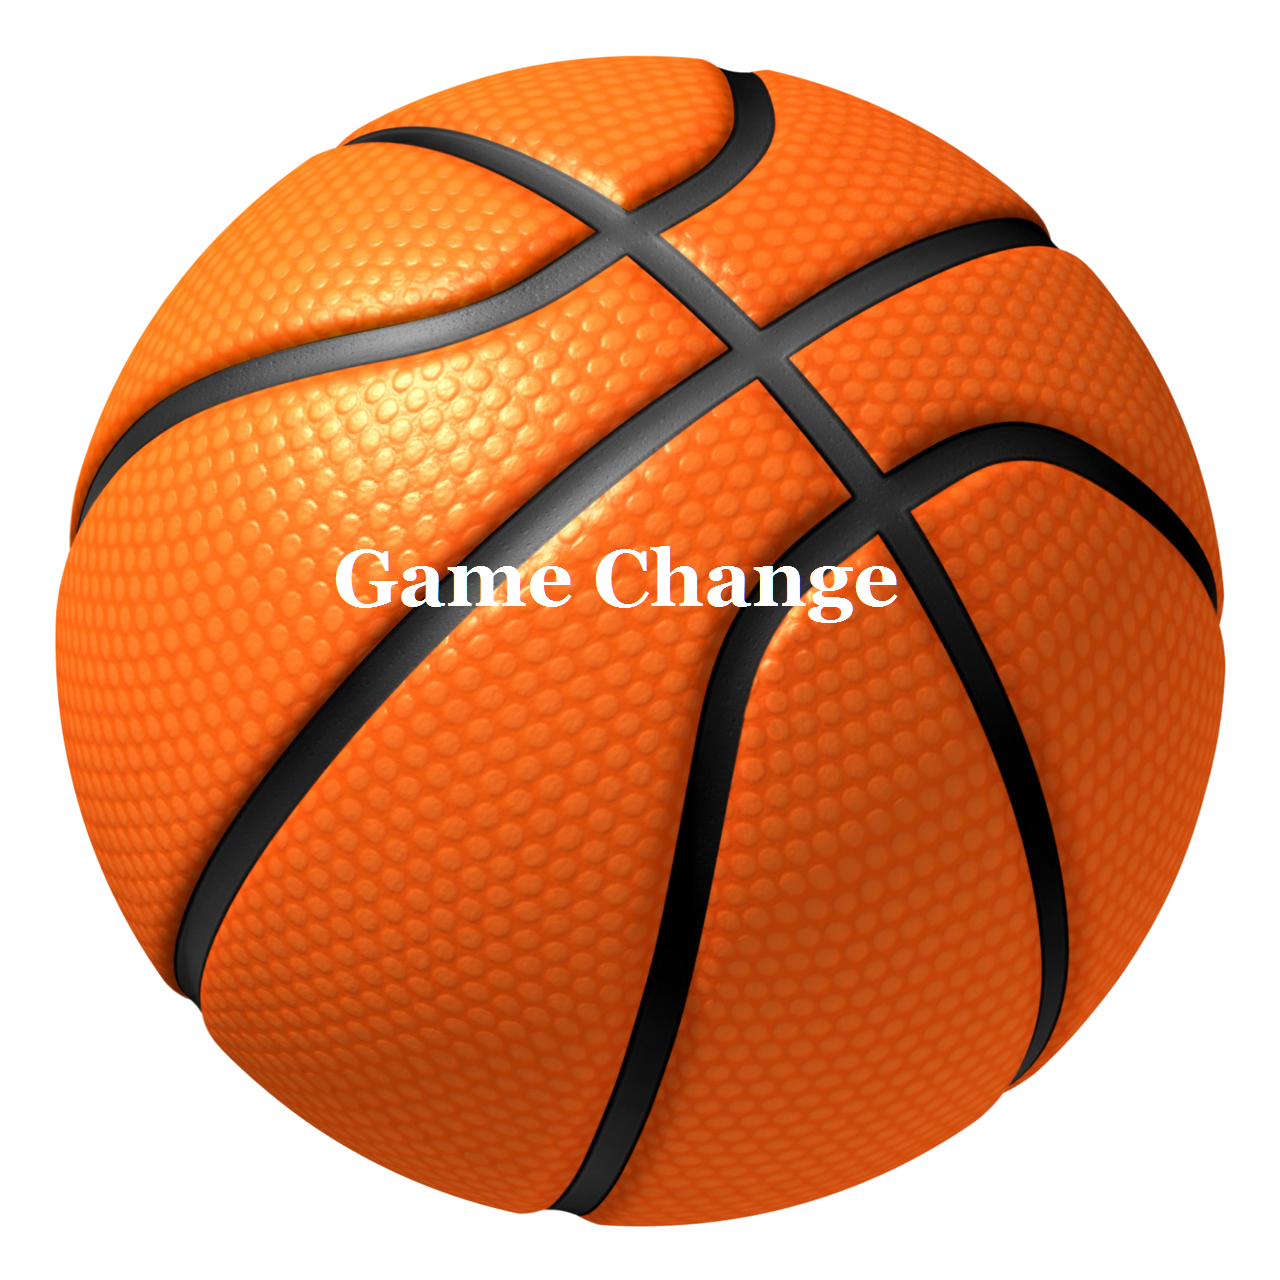 HS Basketball Game Change Feb 1st and 2nd